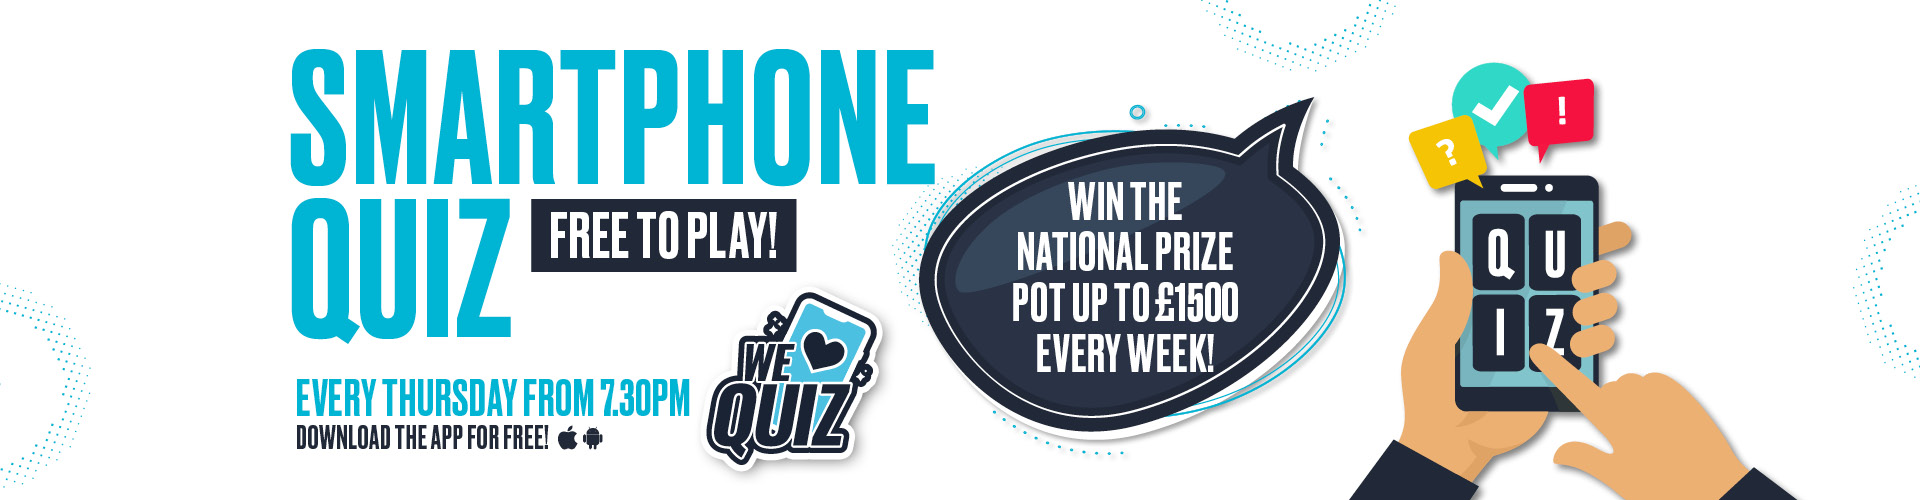 Smartphone Quiz - Free To Play